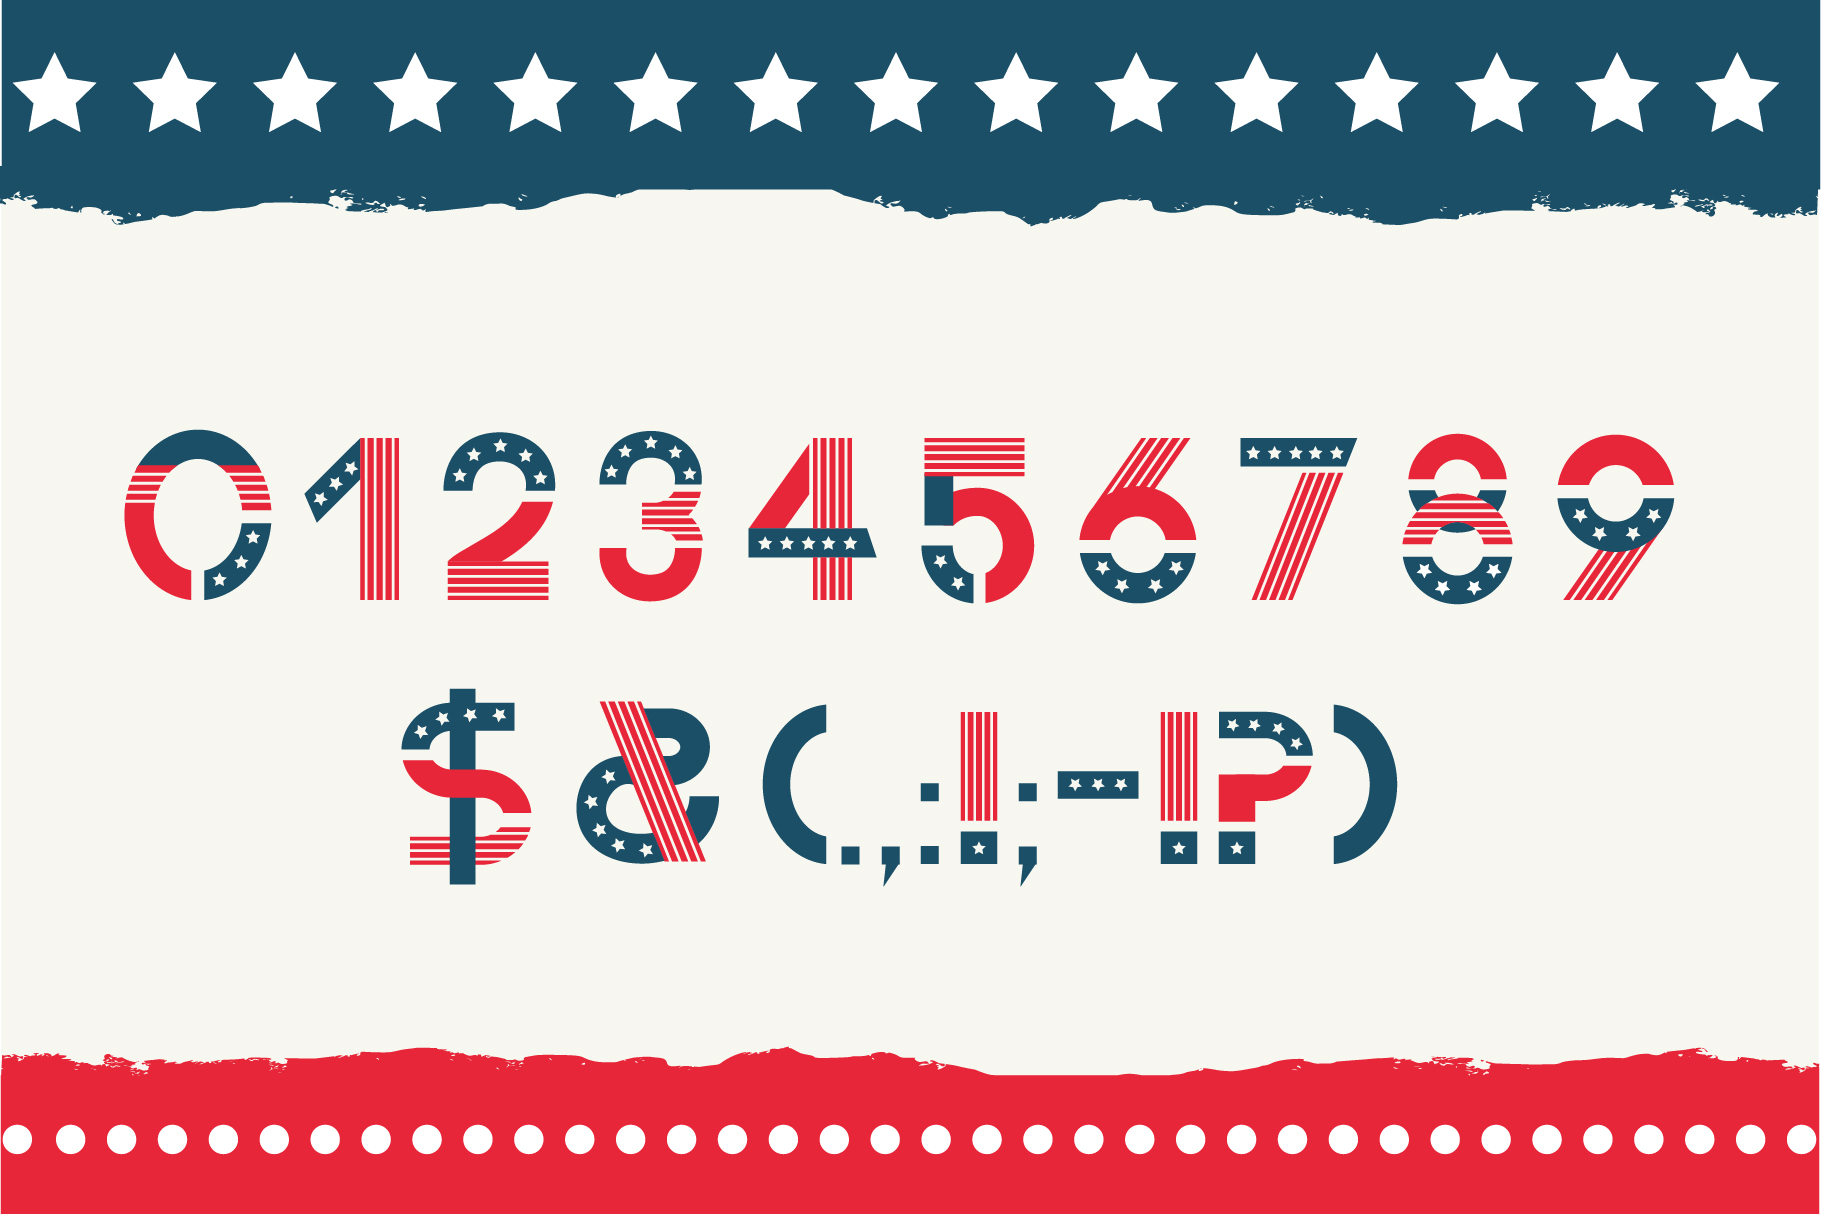 America otf color font example image 4